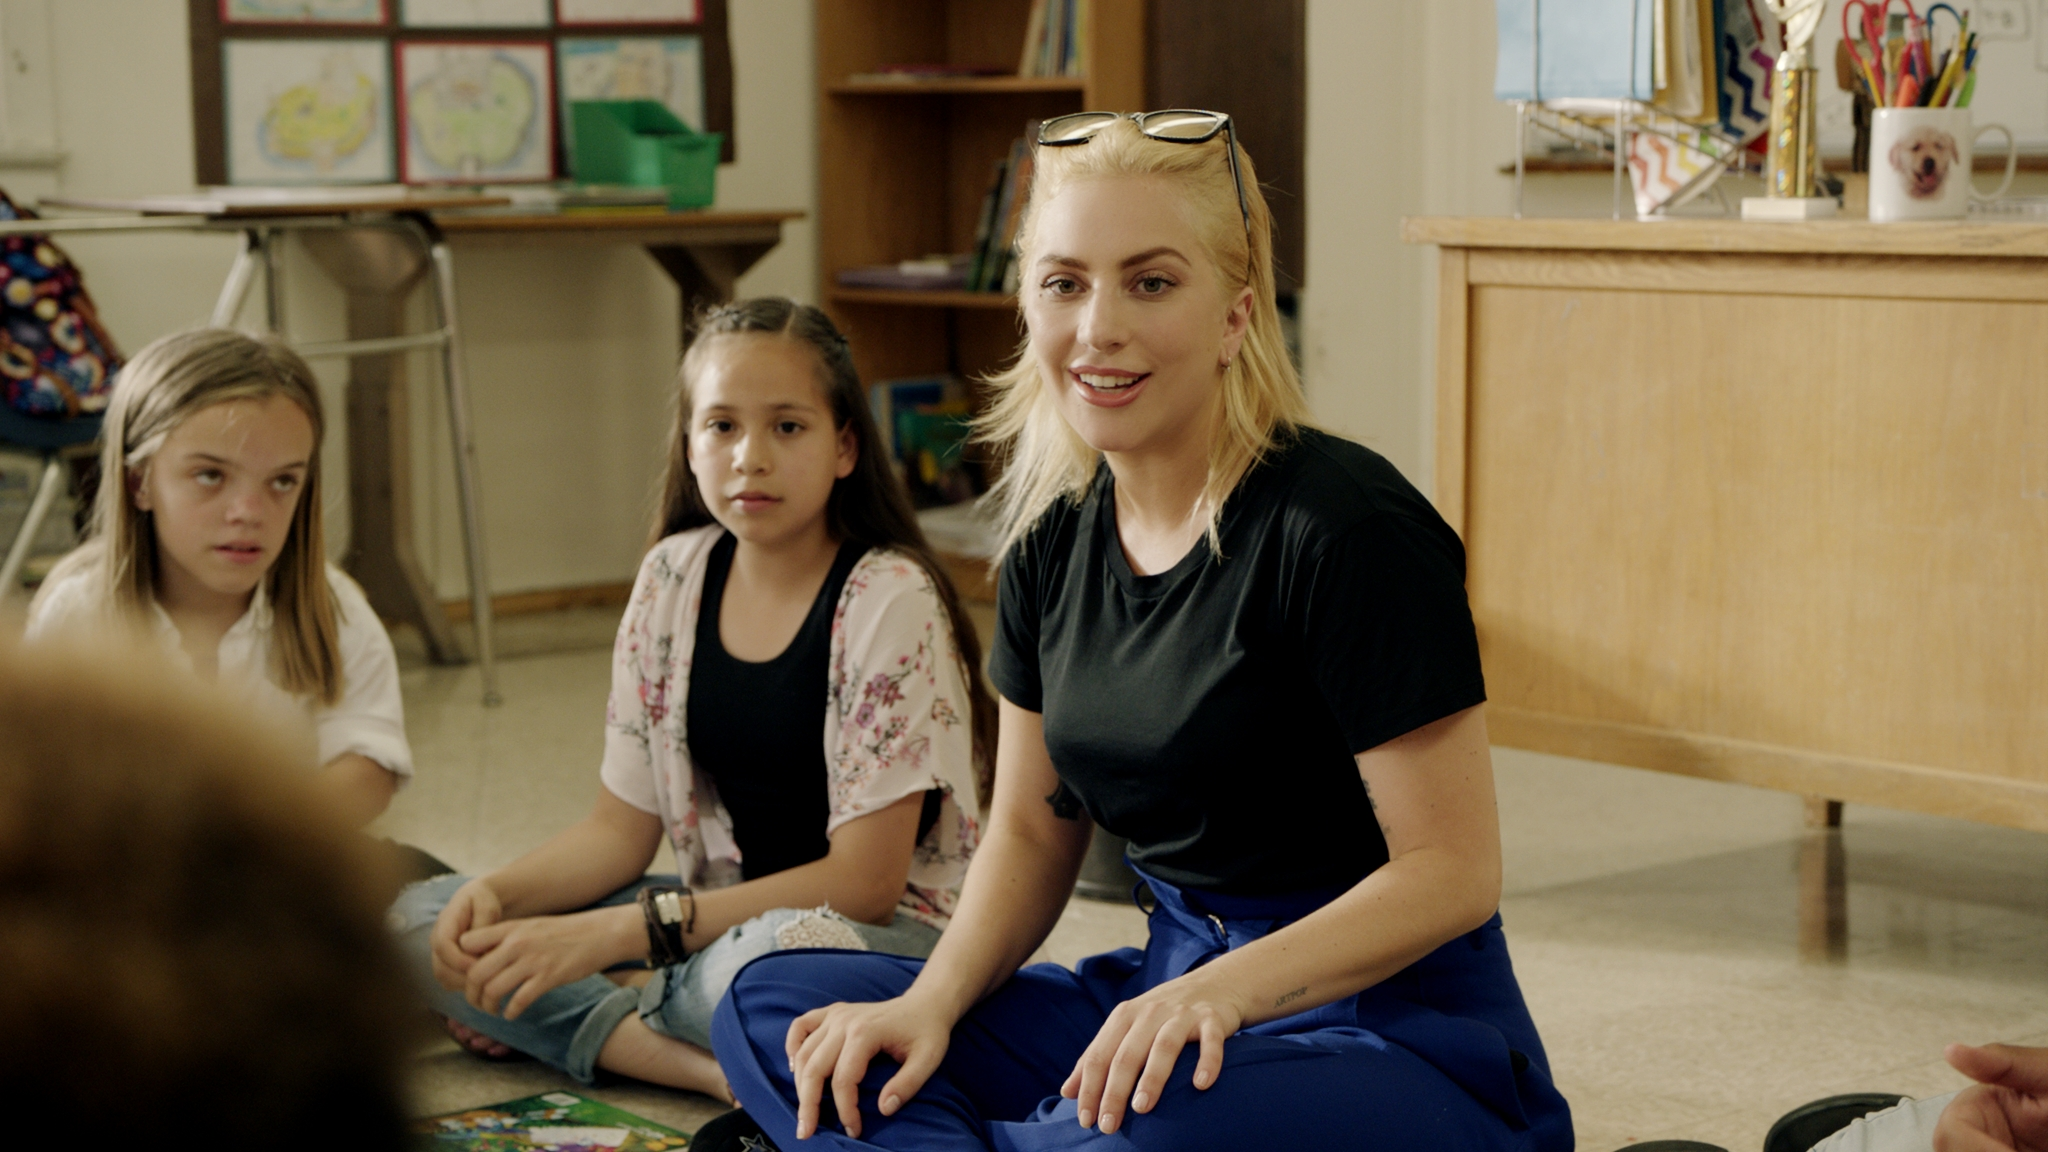 Lady Gaga Teams Up With Staples To Support Education And Inspire